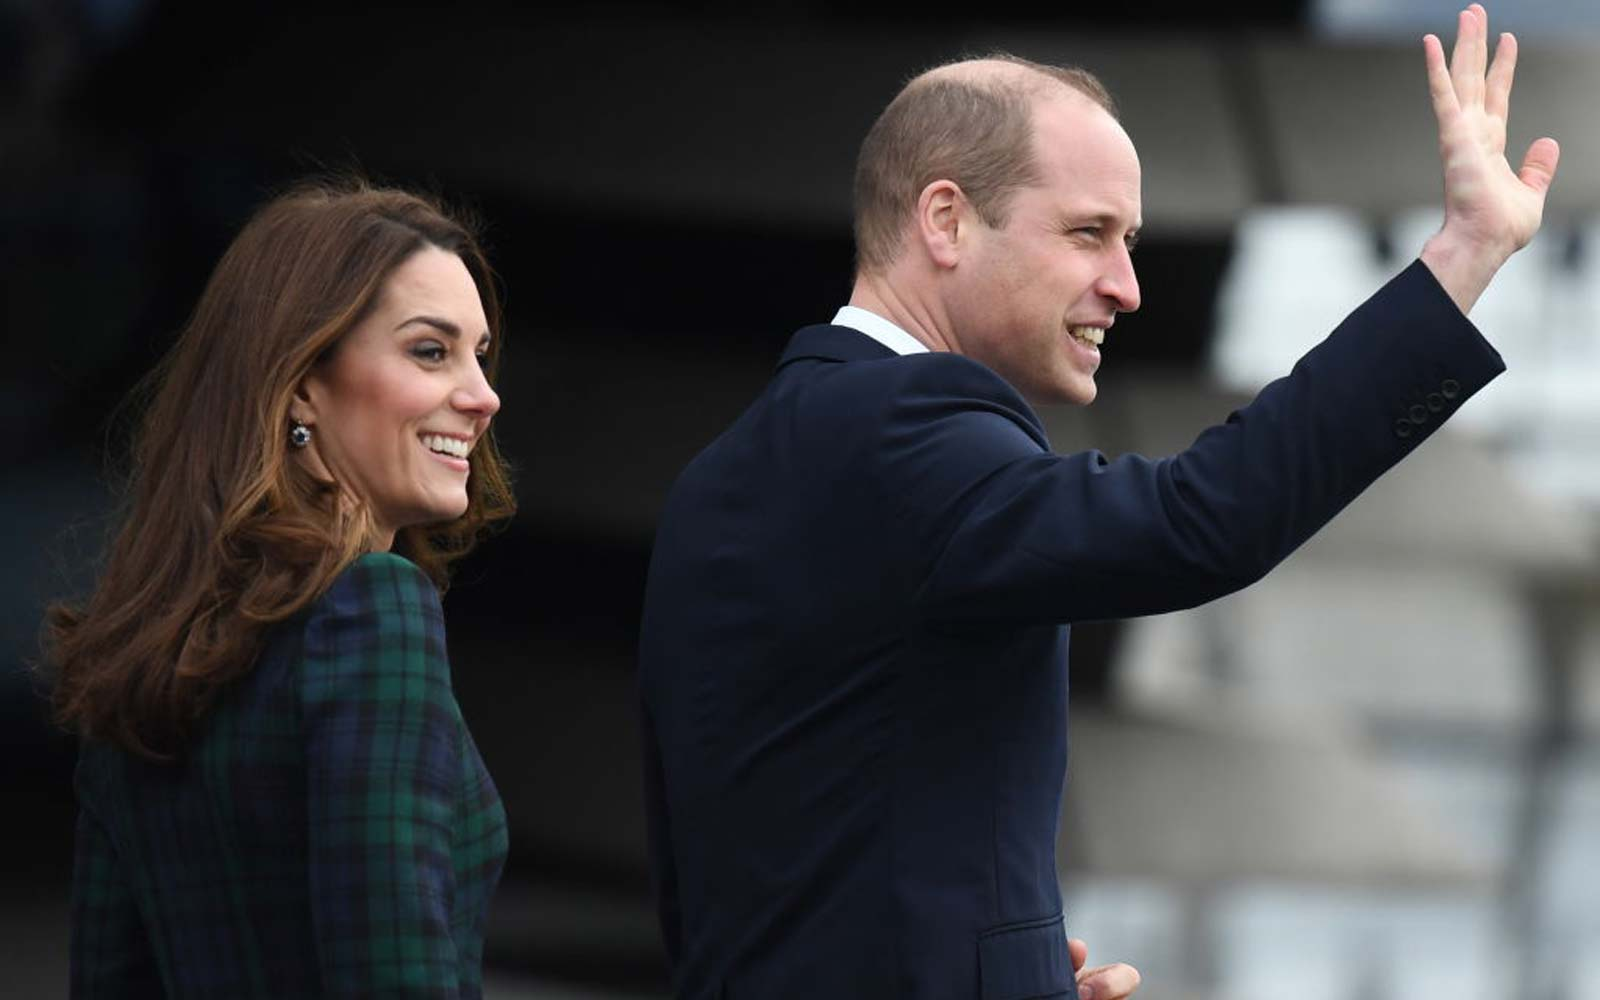 Kate Middleton and Prince William Are on a Trip to Scotland, Where They First Fell in Love